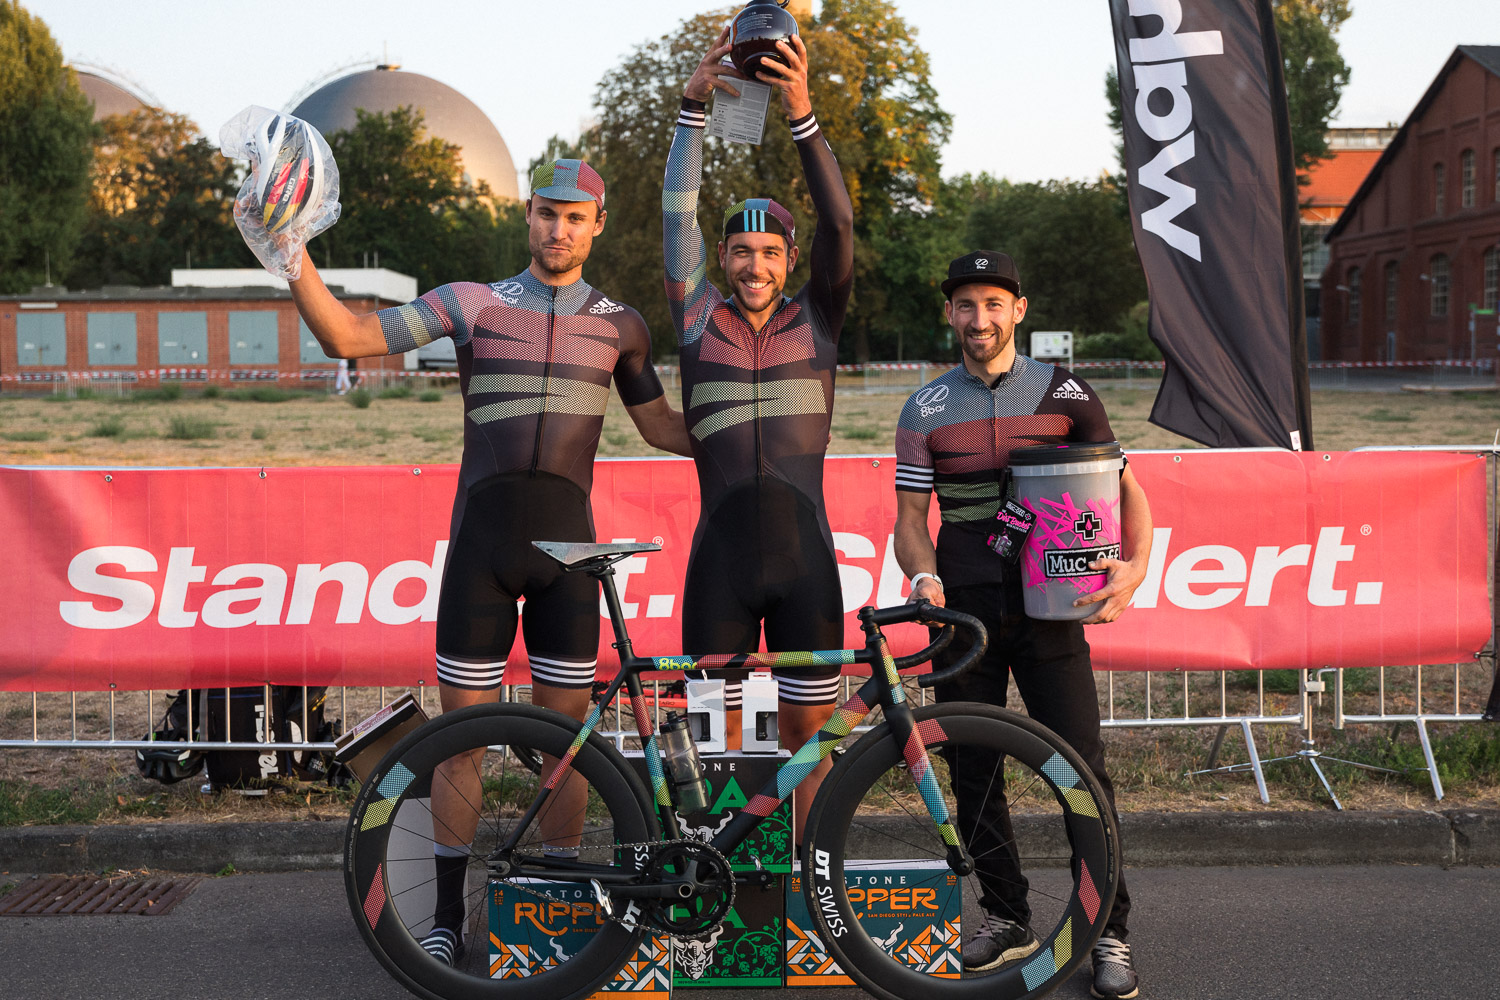 8bar bikes sbsb crit race fixed gear lr 49 - 8bar Team dominating the SBSB Crit Berlin